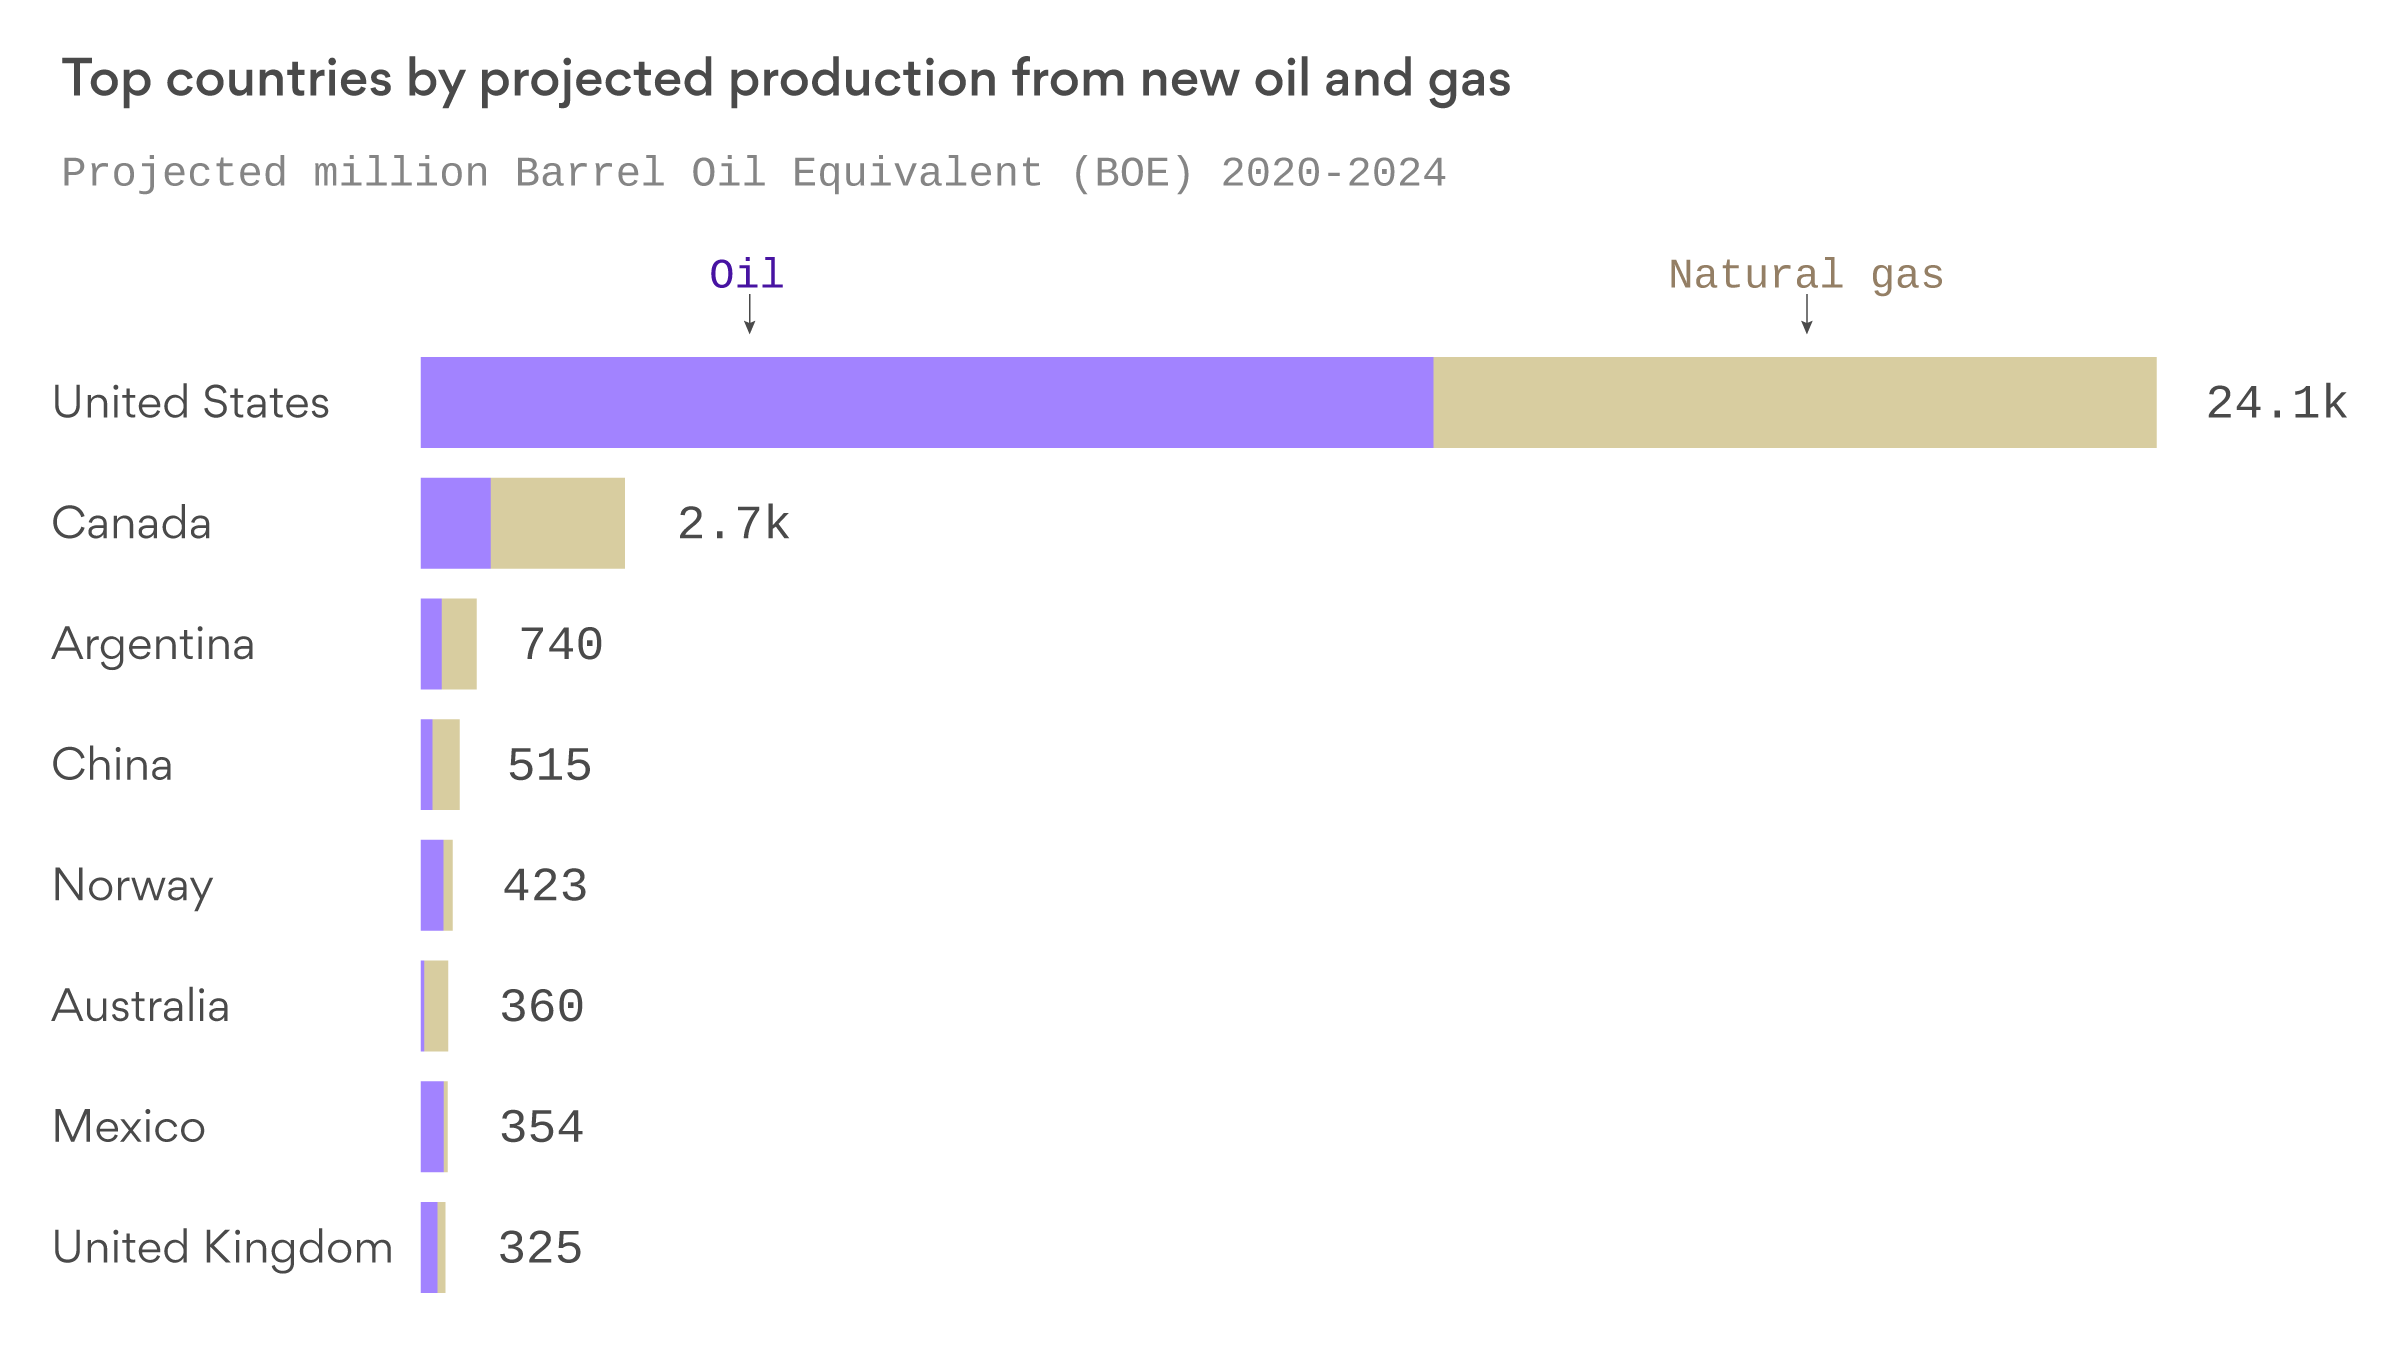 America blows past the world in oil and natural gas - Axios